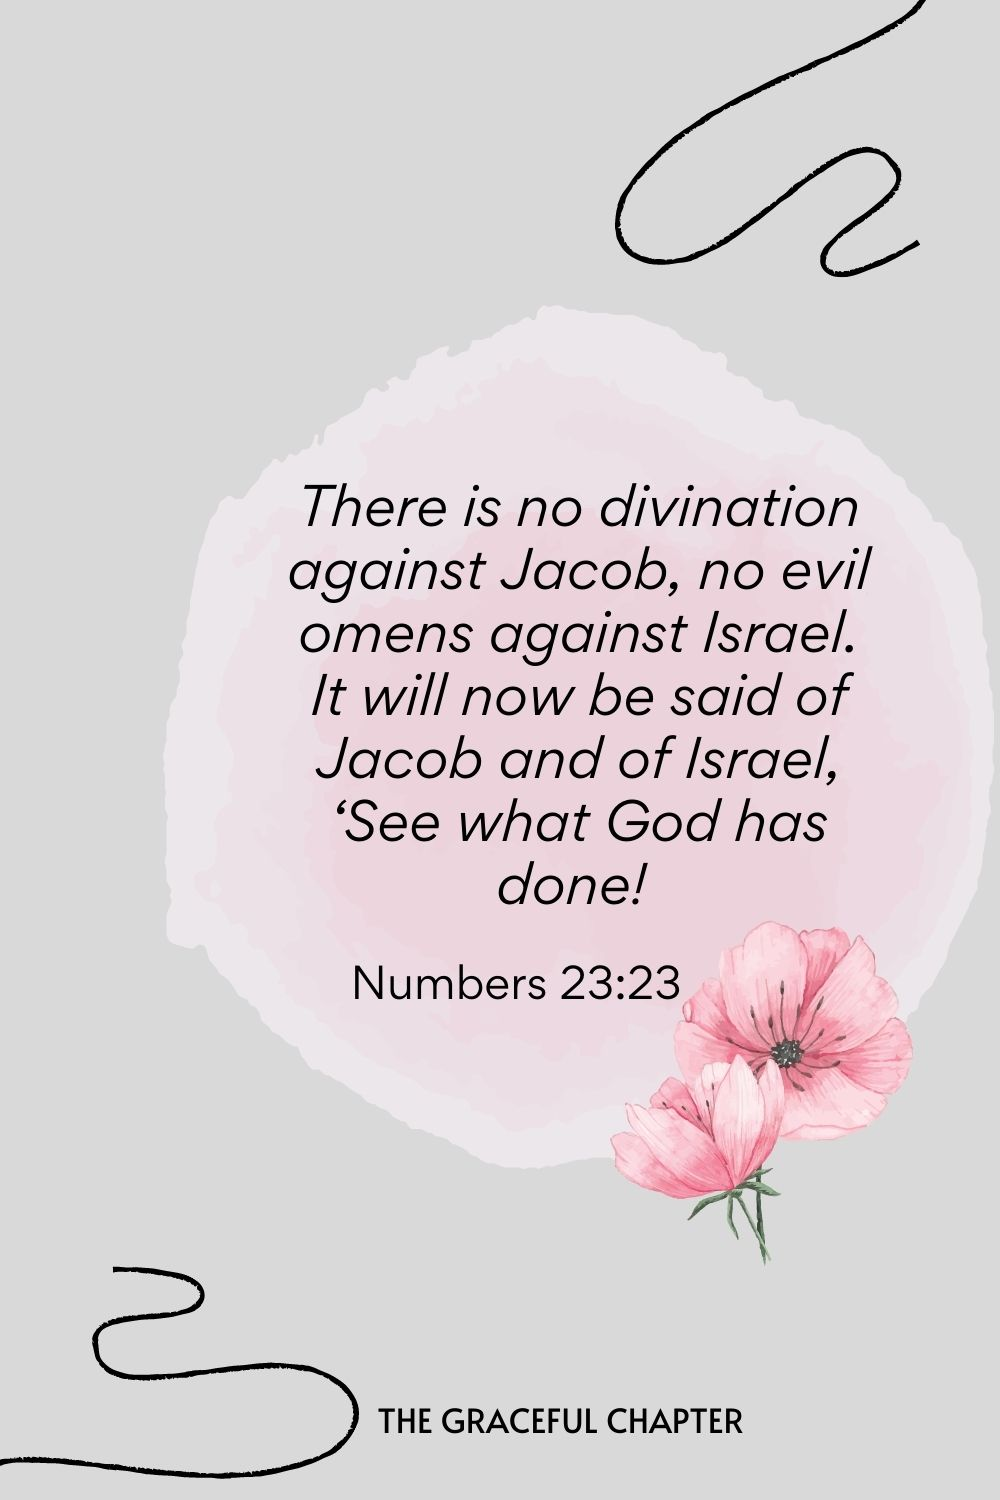 There is no divination against Jacob, no evil omens against Israel. It will now be said of Jacob and of Israel, 'See what God has done!  Numbers 23:23